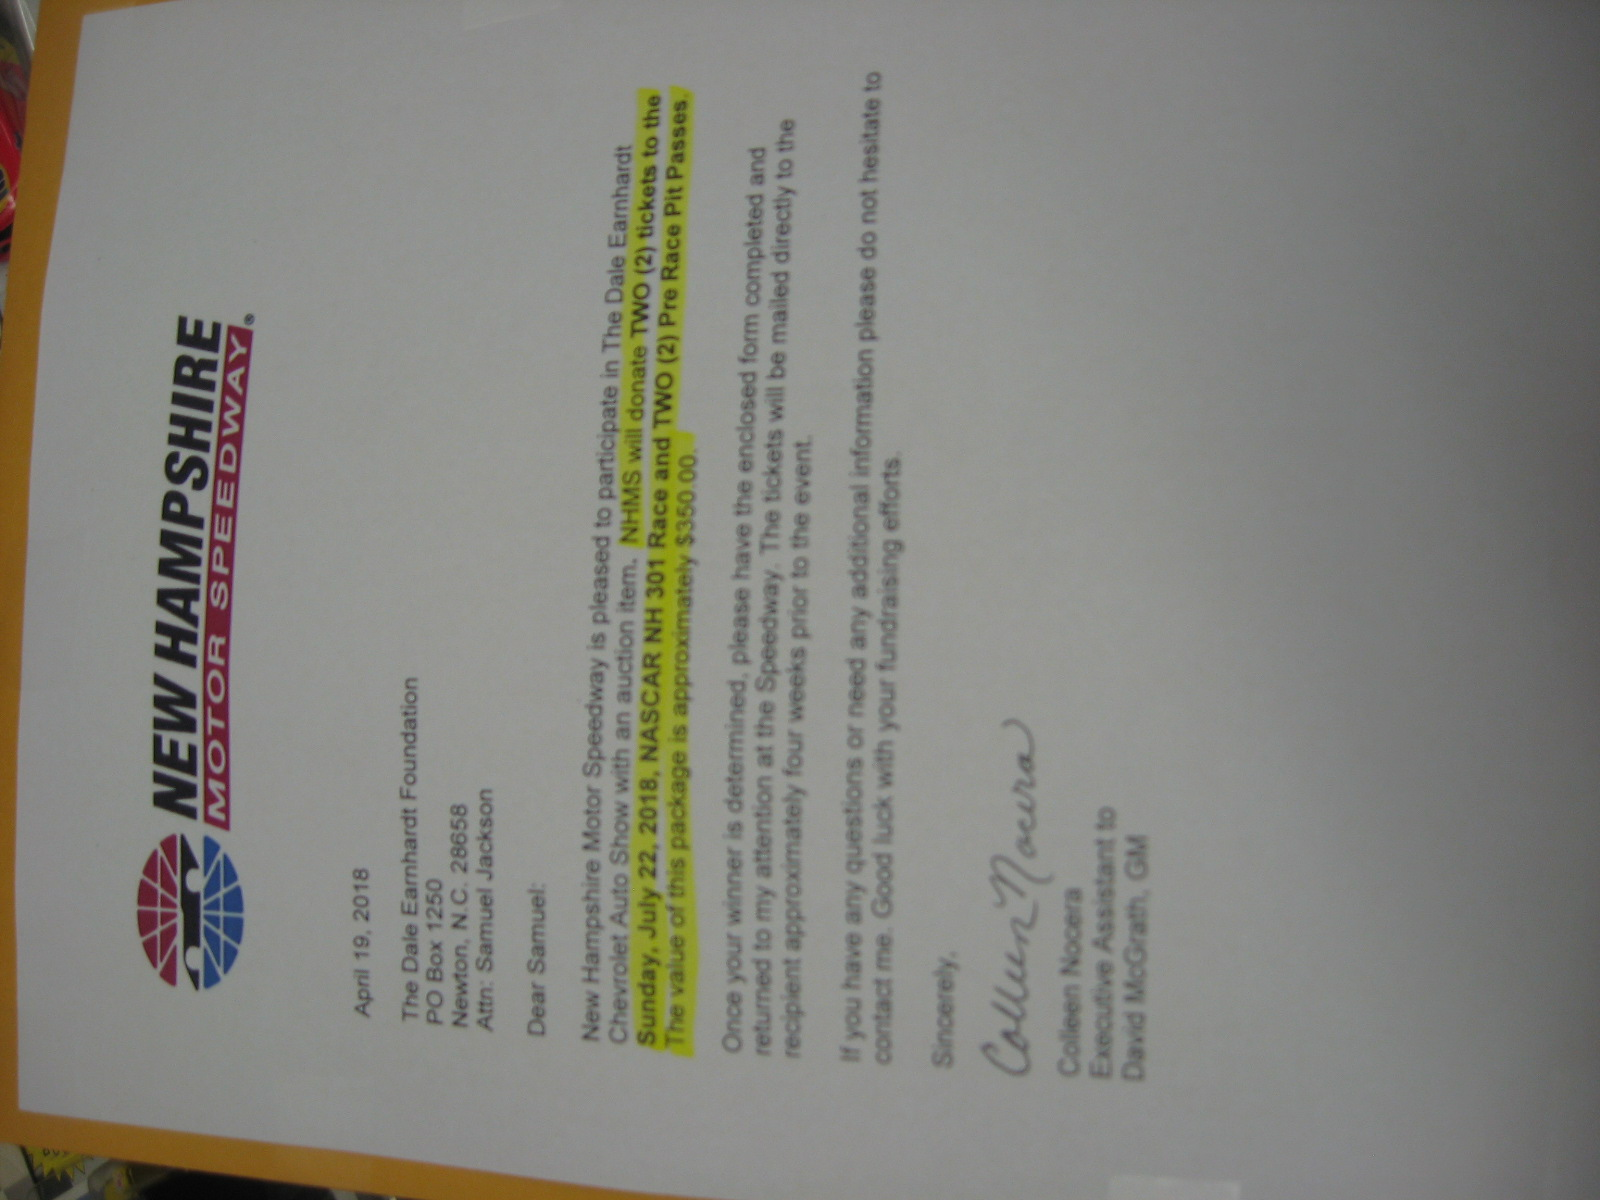 2 Tickets to NASCAR Race at New Hampshire Motor Speedway